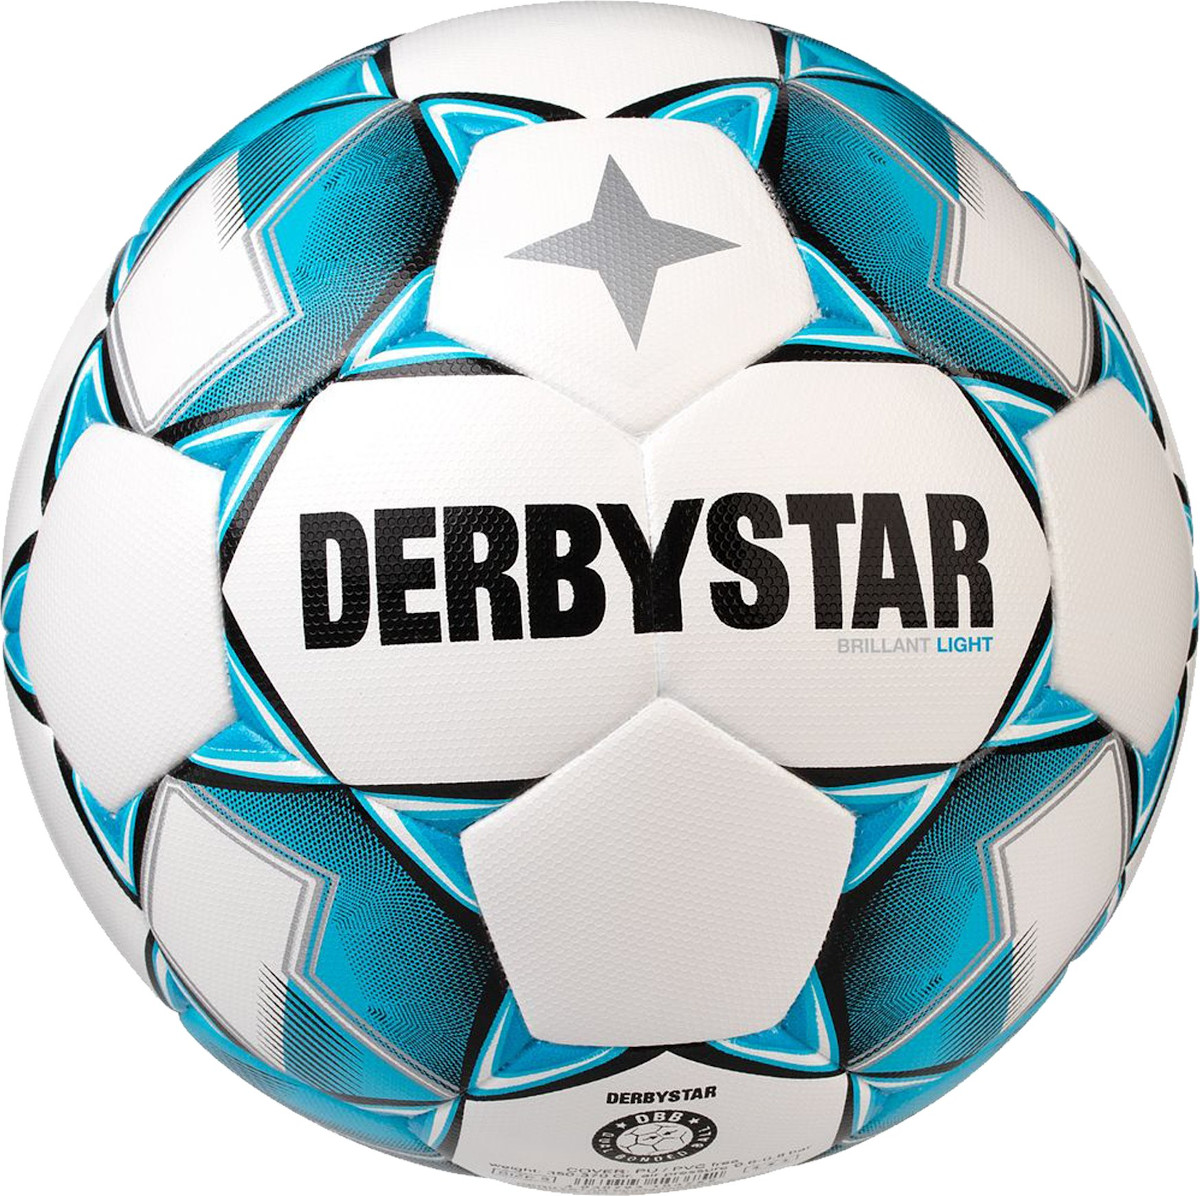 Ball Derbystar Brilliant Light DB v20 350g training ball